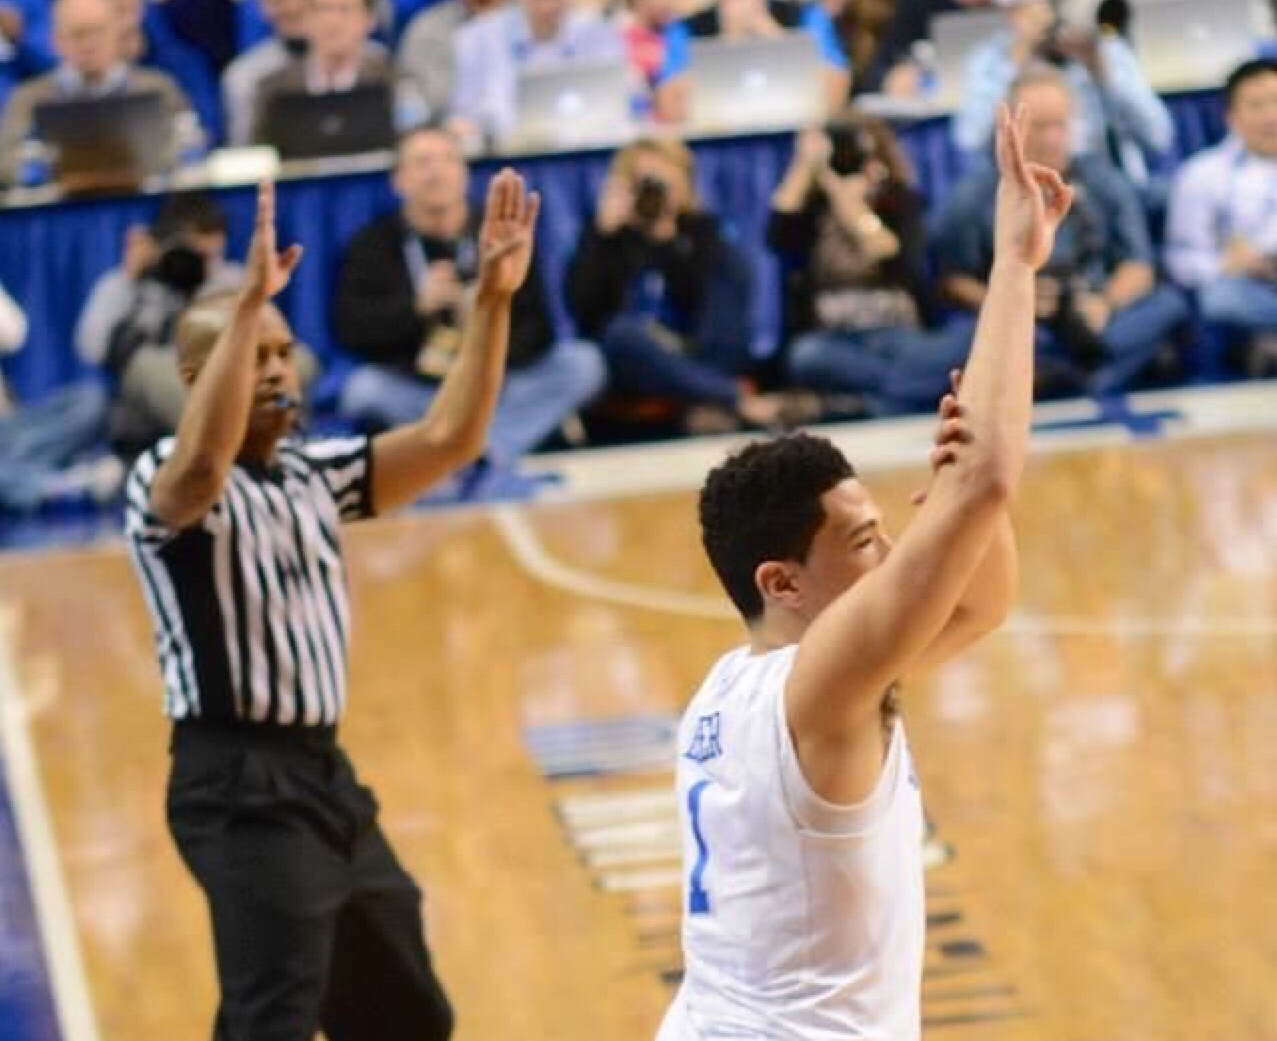 Devin Booker may have had a three point gesture at Kentucky but he